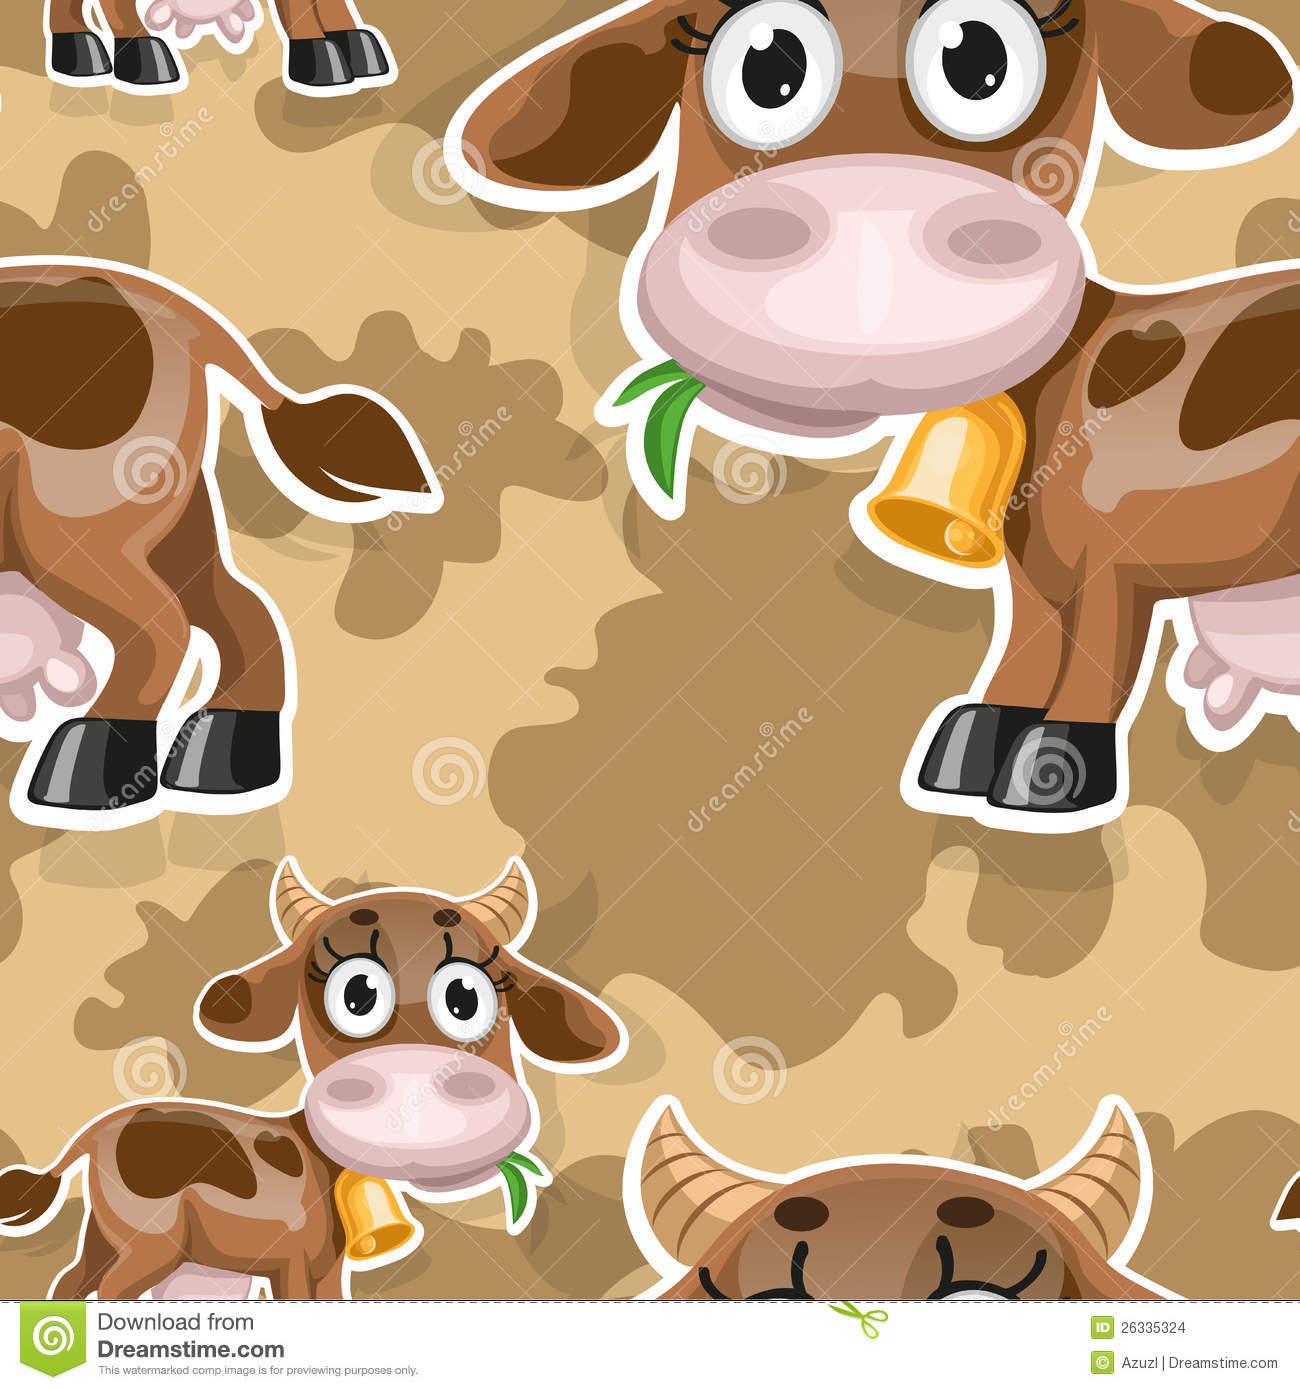 Baby cow backgrounds